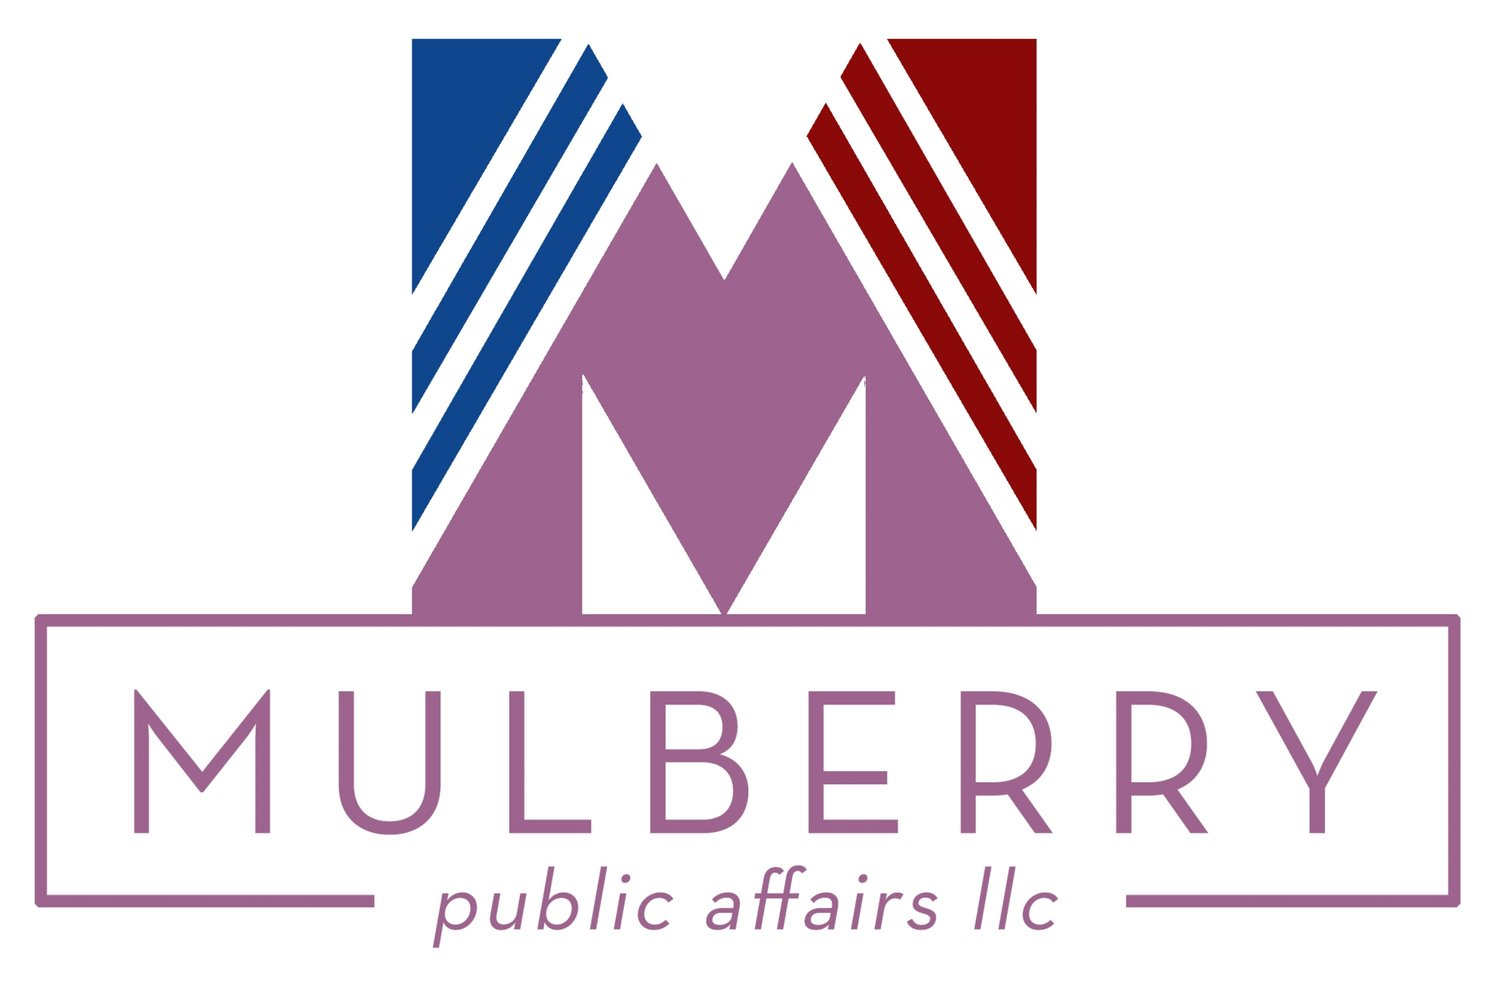 Mulberry Public Affairs LLC